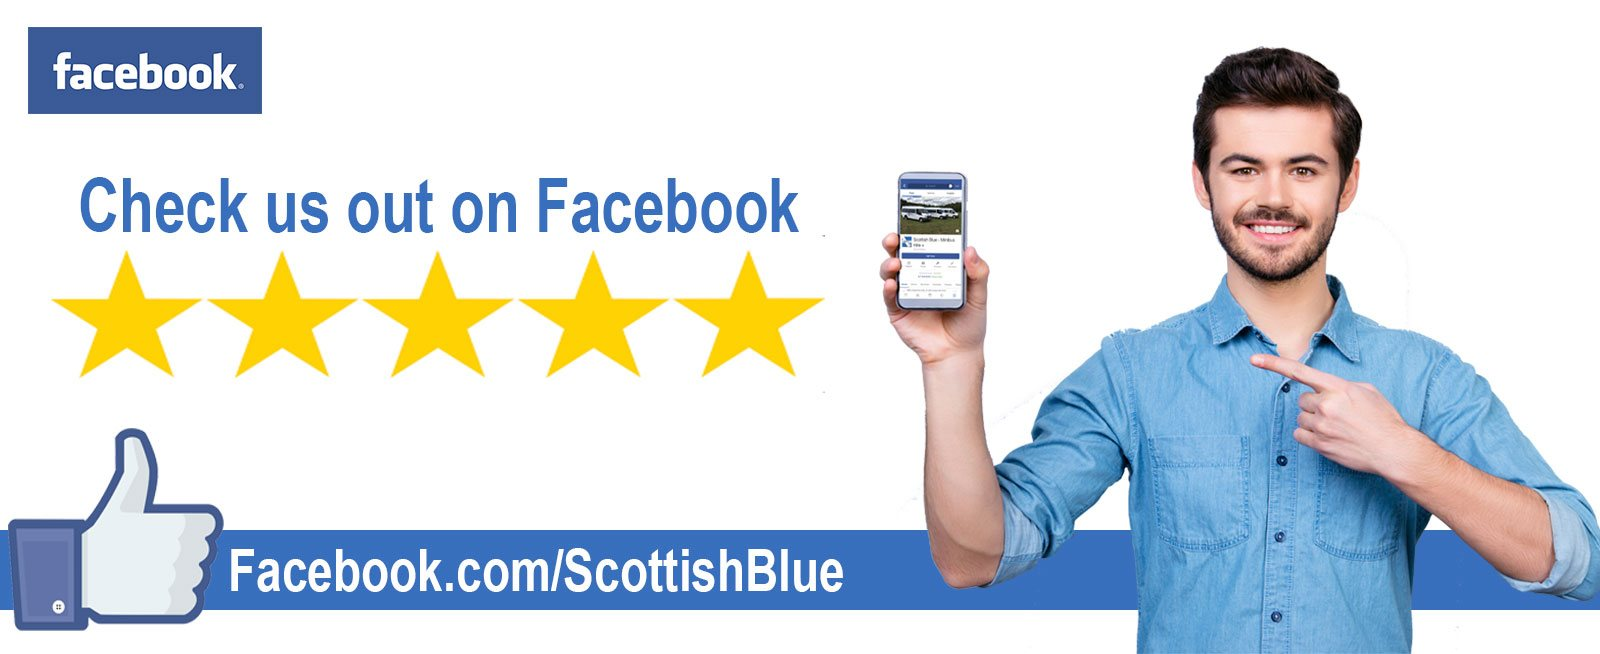 Scottish Blue on Facebook